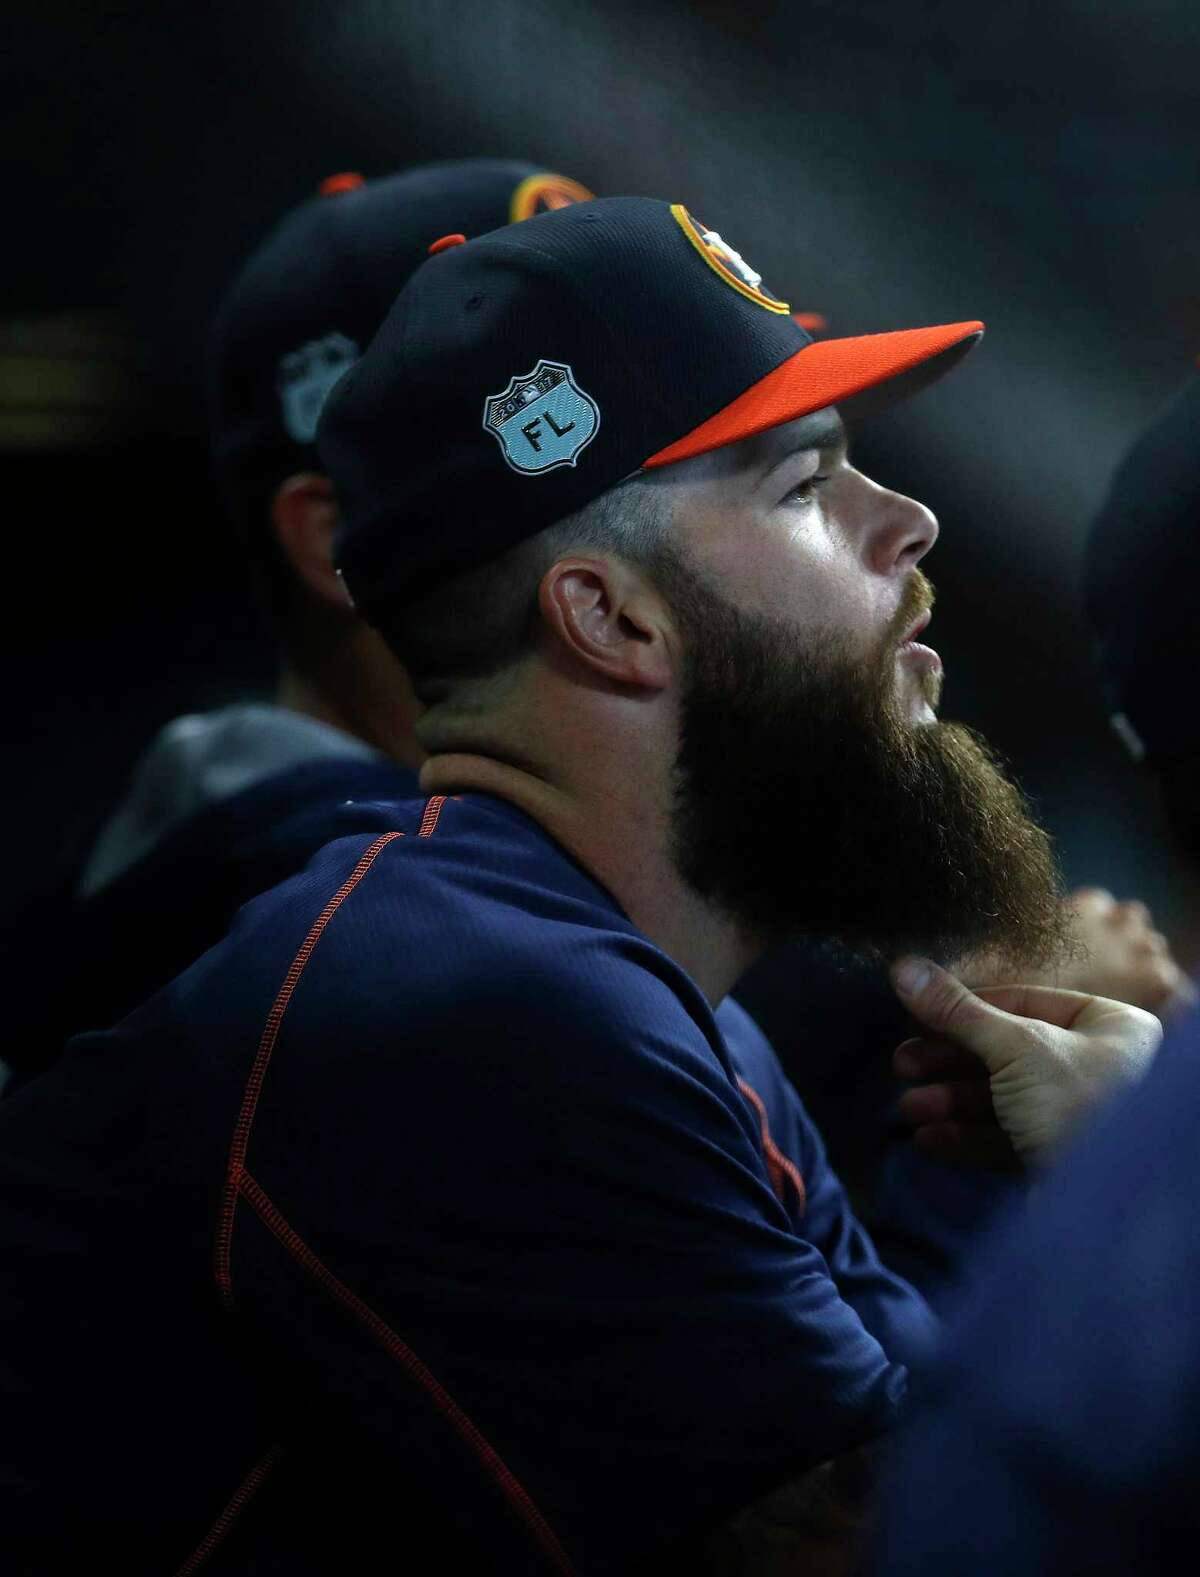 Houston Astros starting pitcher Dallas Keuchel (60) in the dugout during the sixth inning of an MLB exhibition game at Minute Maid Park, Friday, March 31, 2017, in Houston.